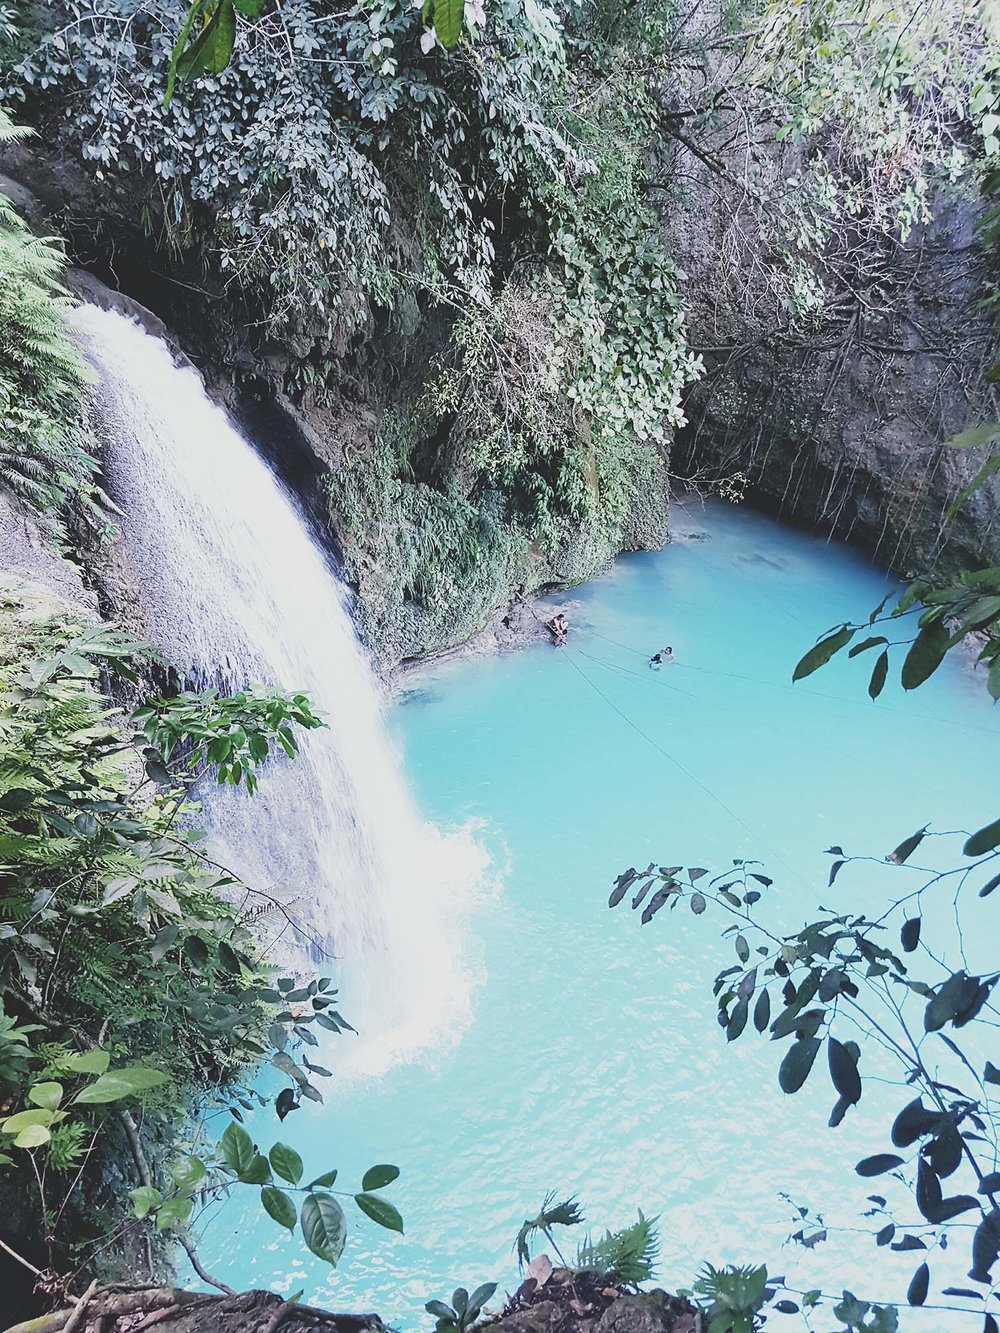 The Famous Kawasan Falls in Cebu is a must see for all kinds of travellers.